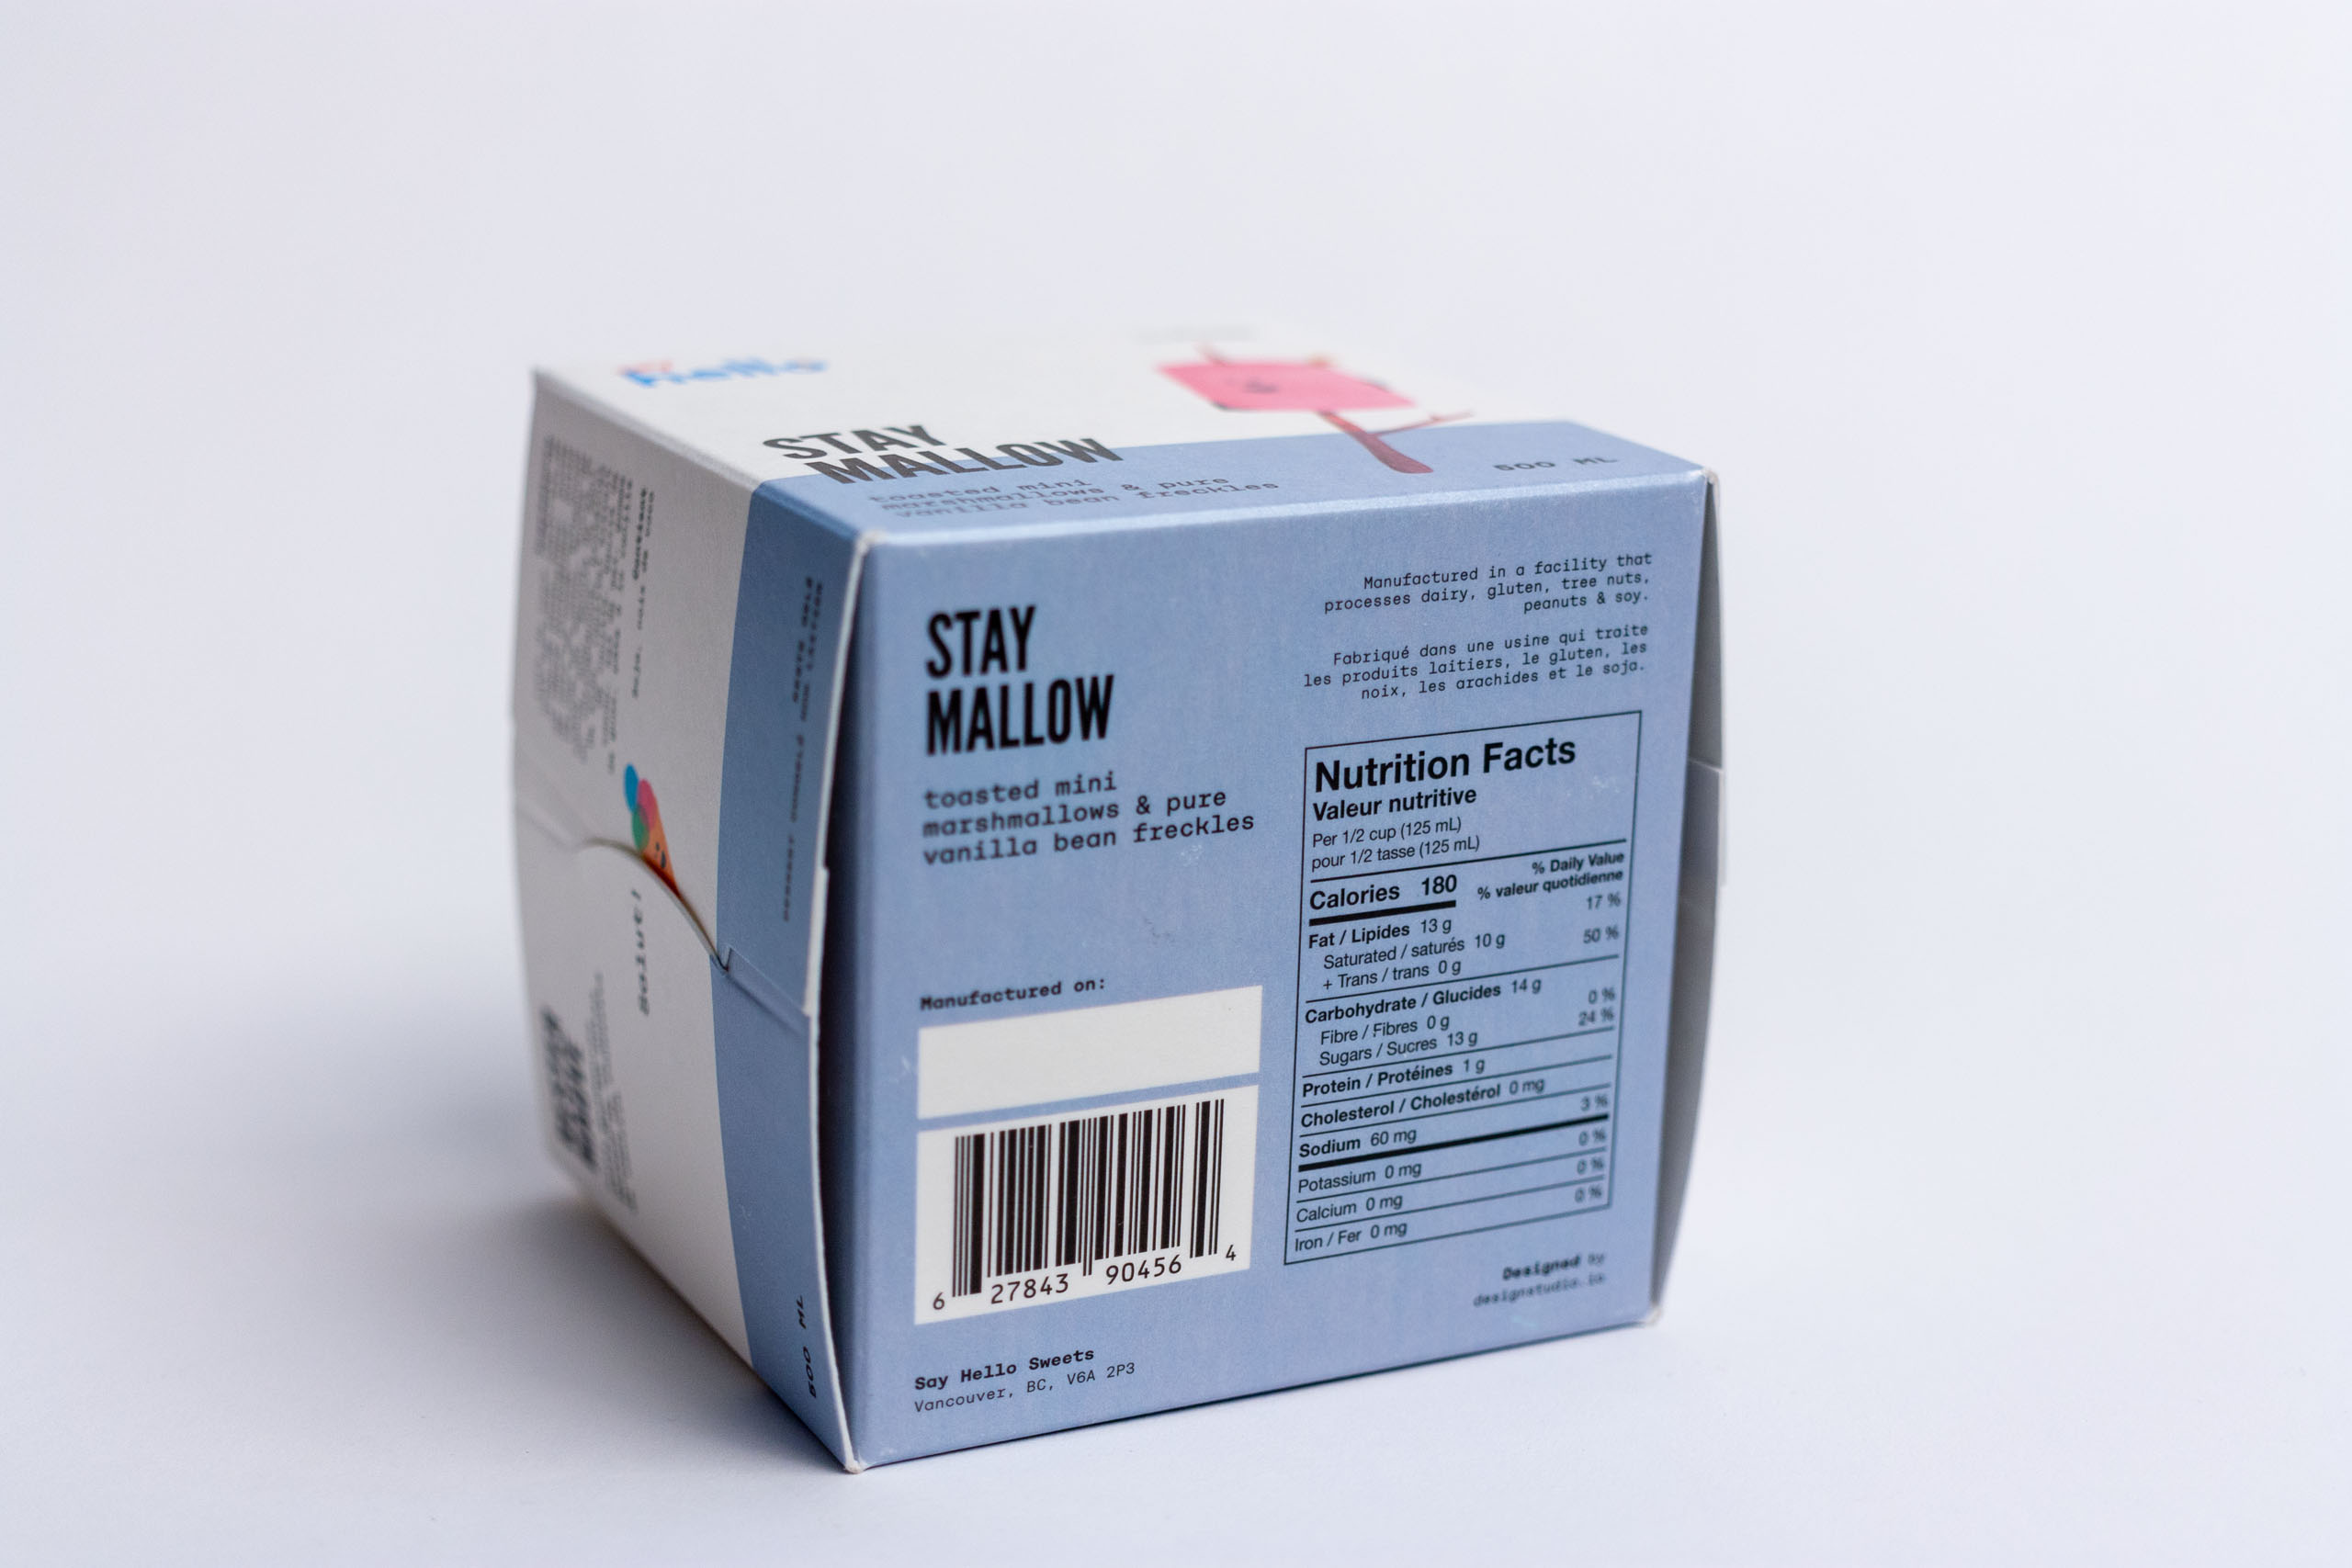 Underside of the cube shows the technical information, space for manufactured-on date, and the nutritional label — by Dima Yagnyuk.